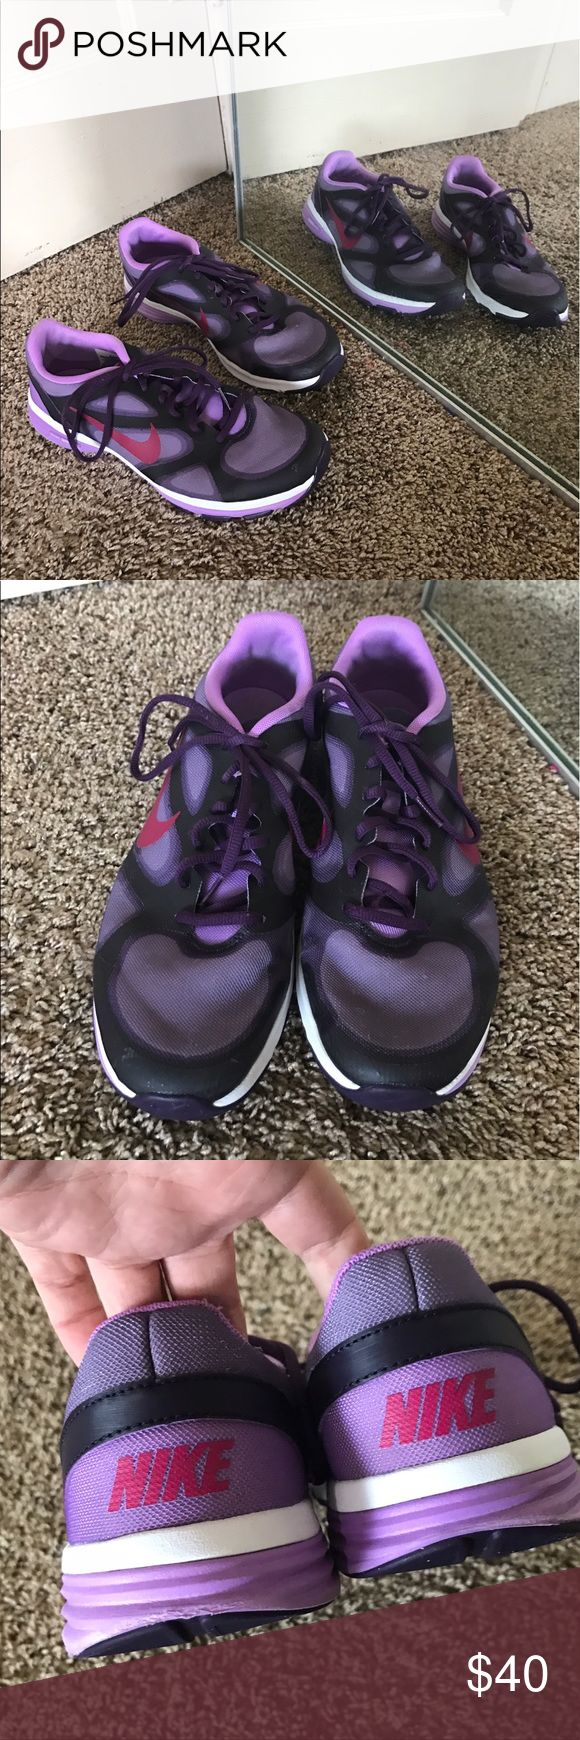 Nike athletic shoes In really good shape Nike Shoes